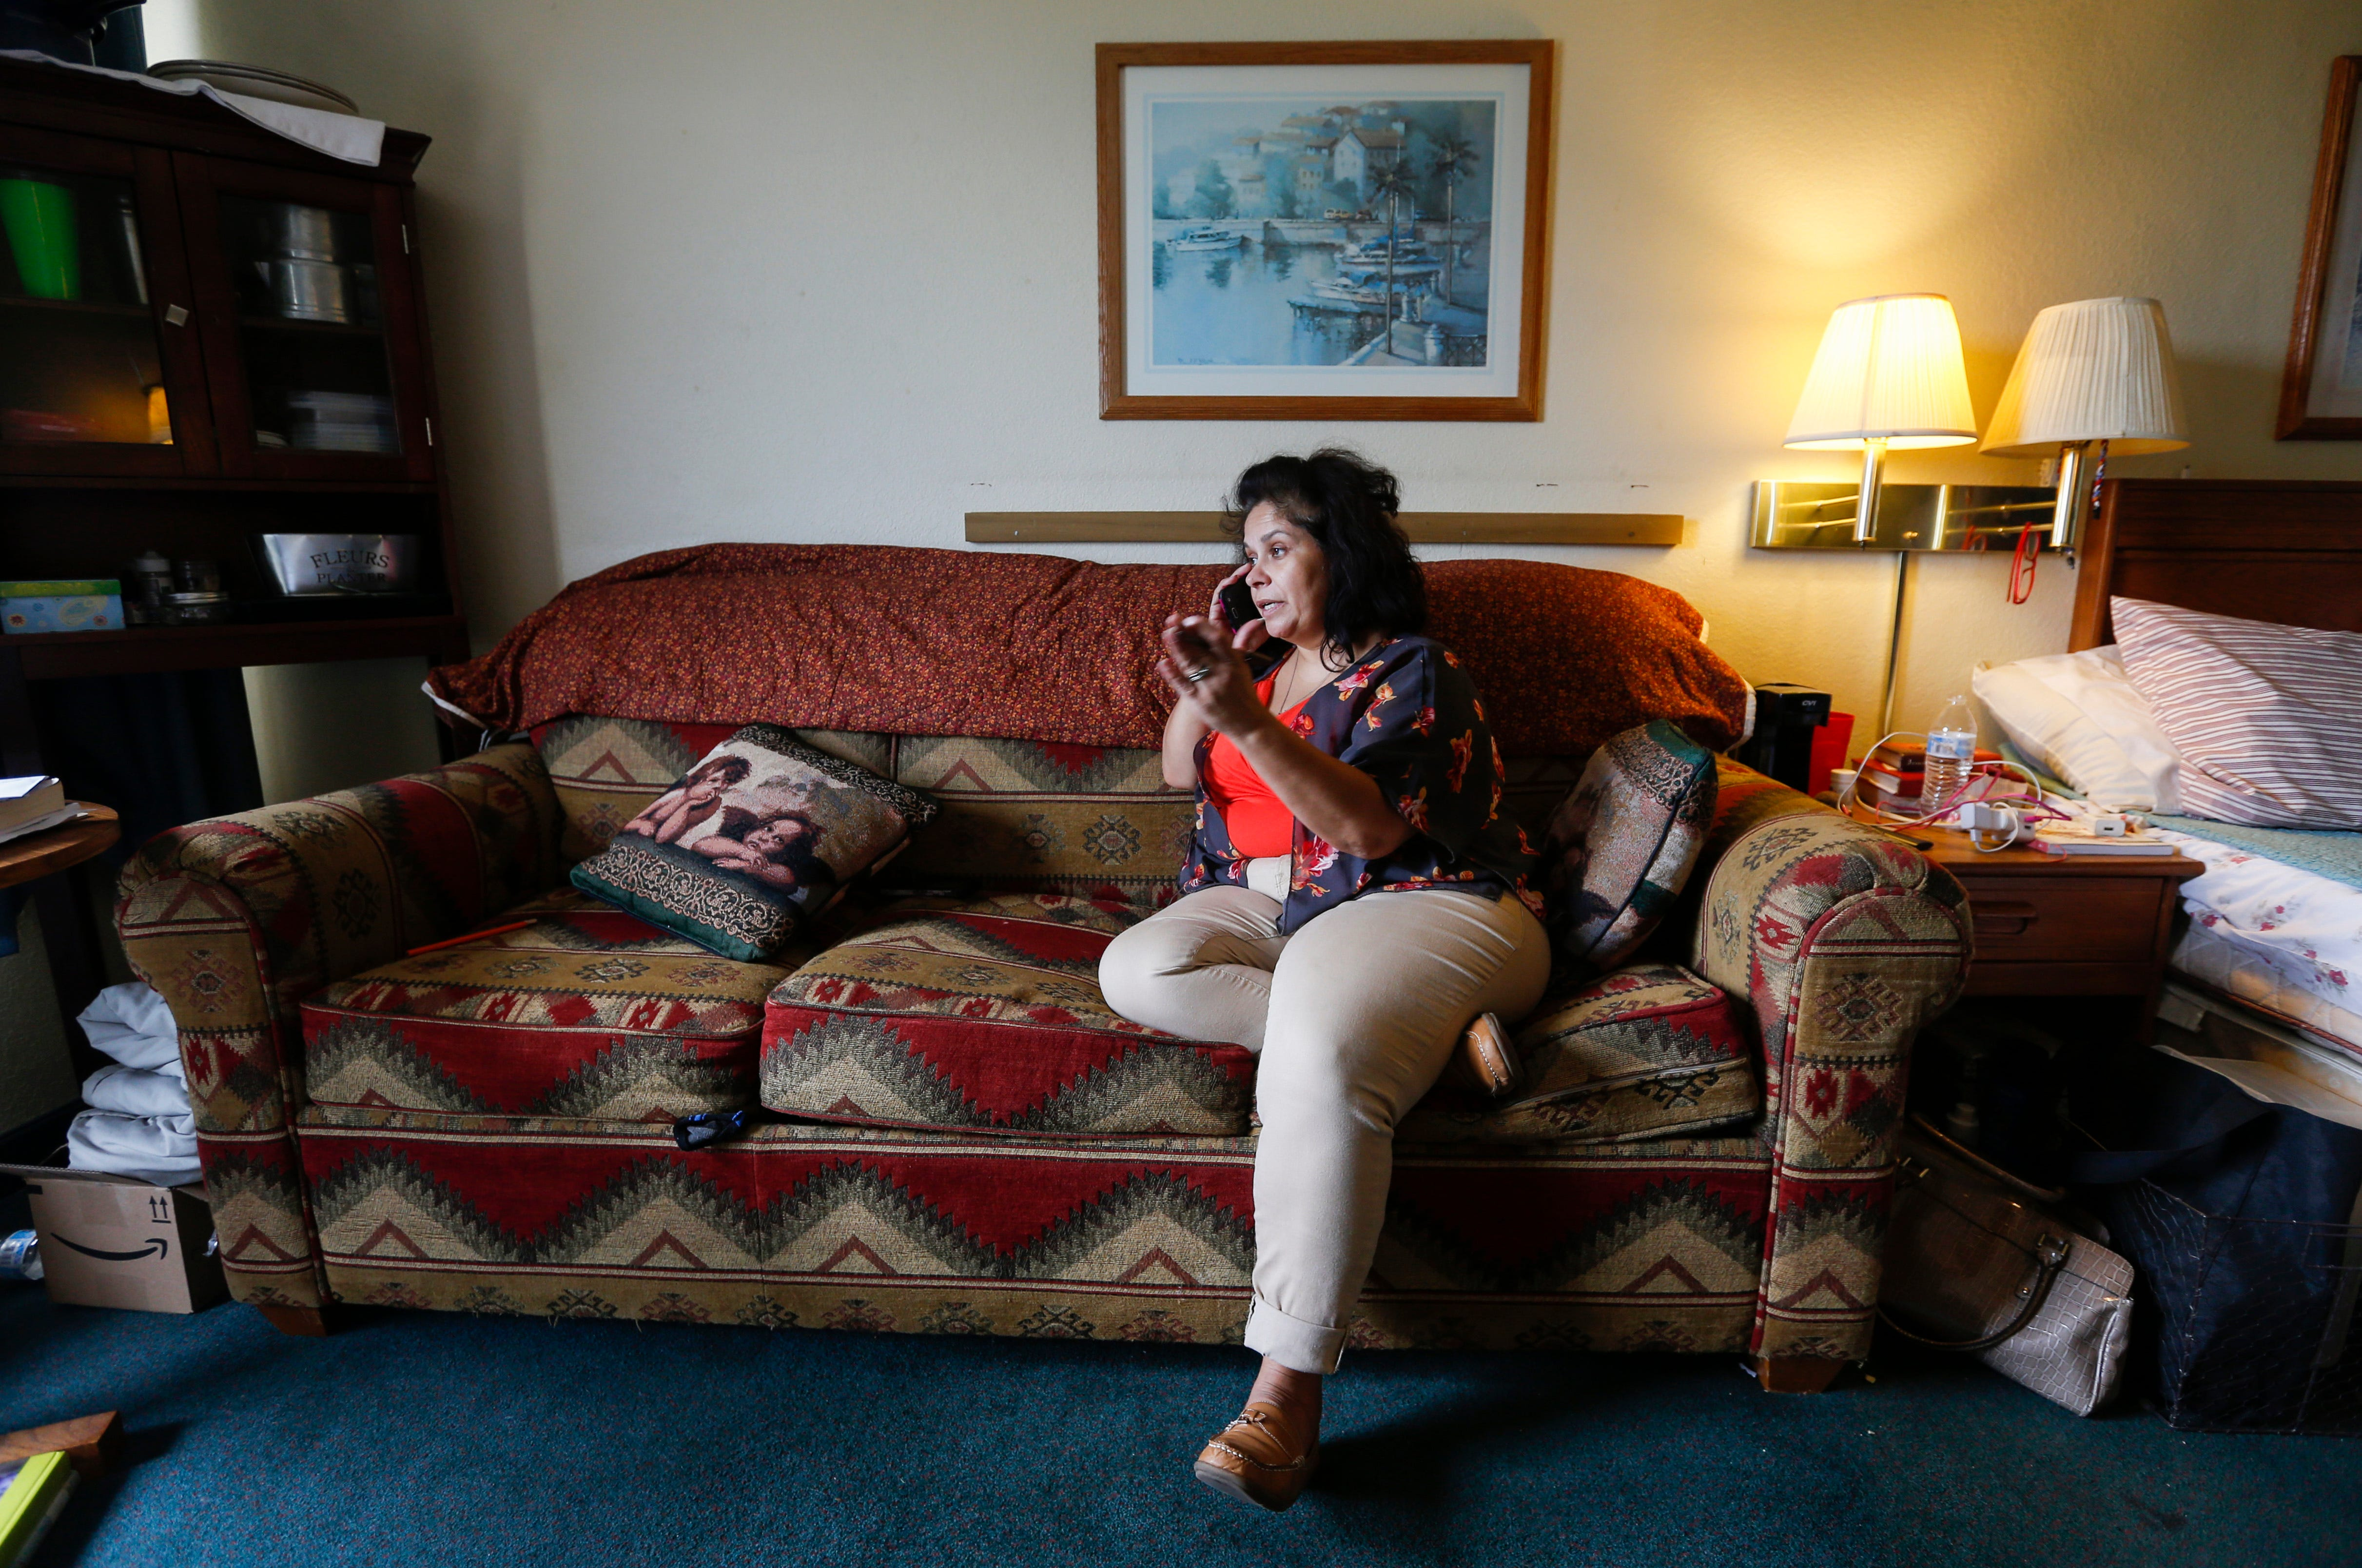 Chrystal Ketterman talks on the phone about a potential job inside of her room at the extended stay hotel she is living in in Branson on Monday, July 30, 2018.